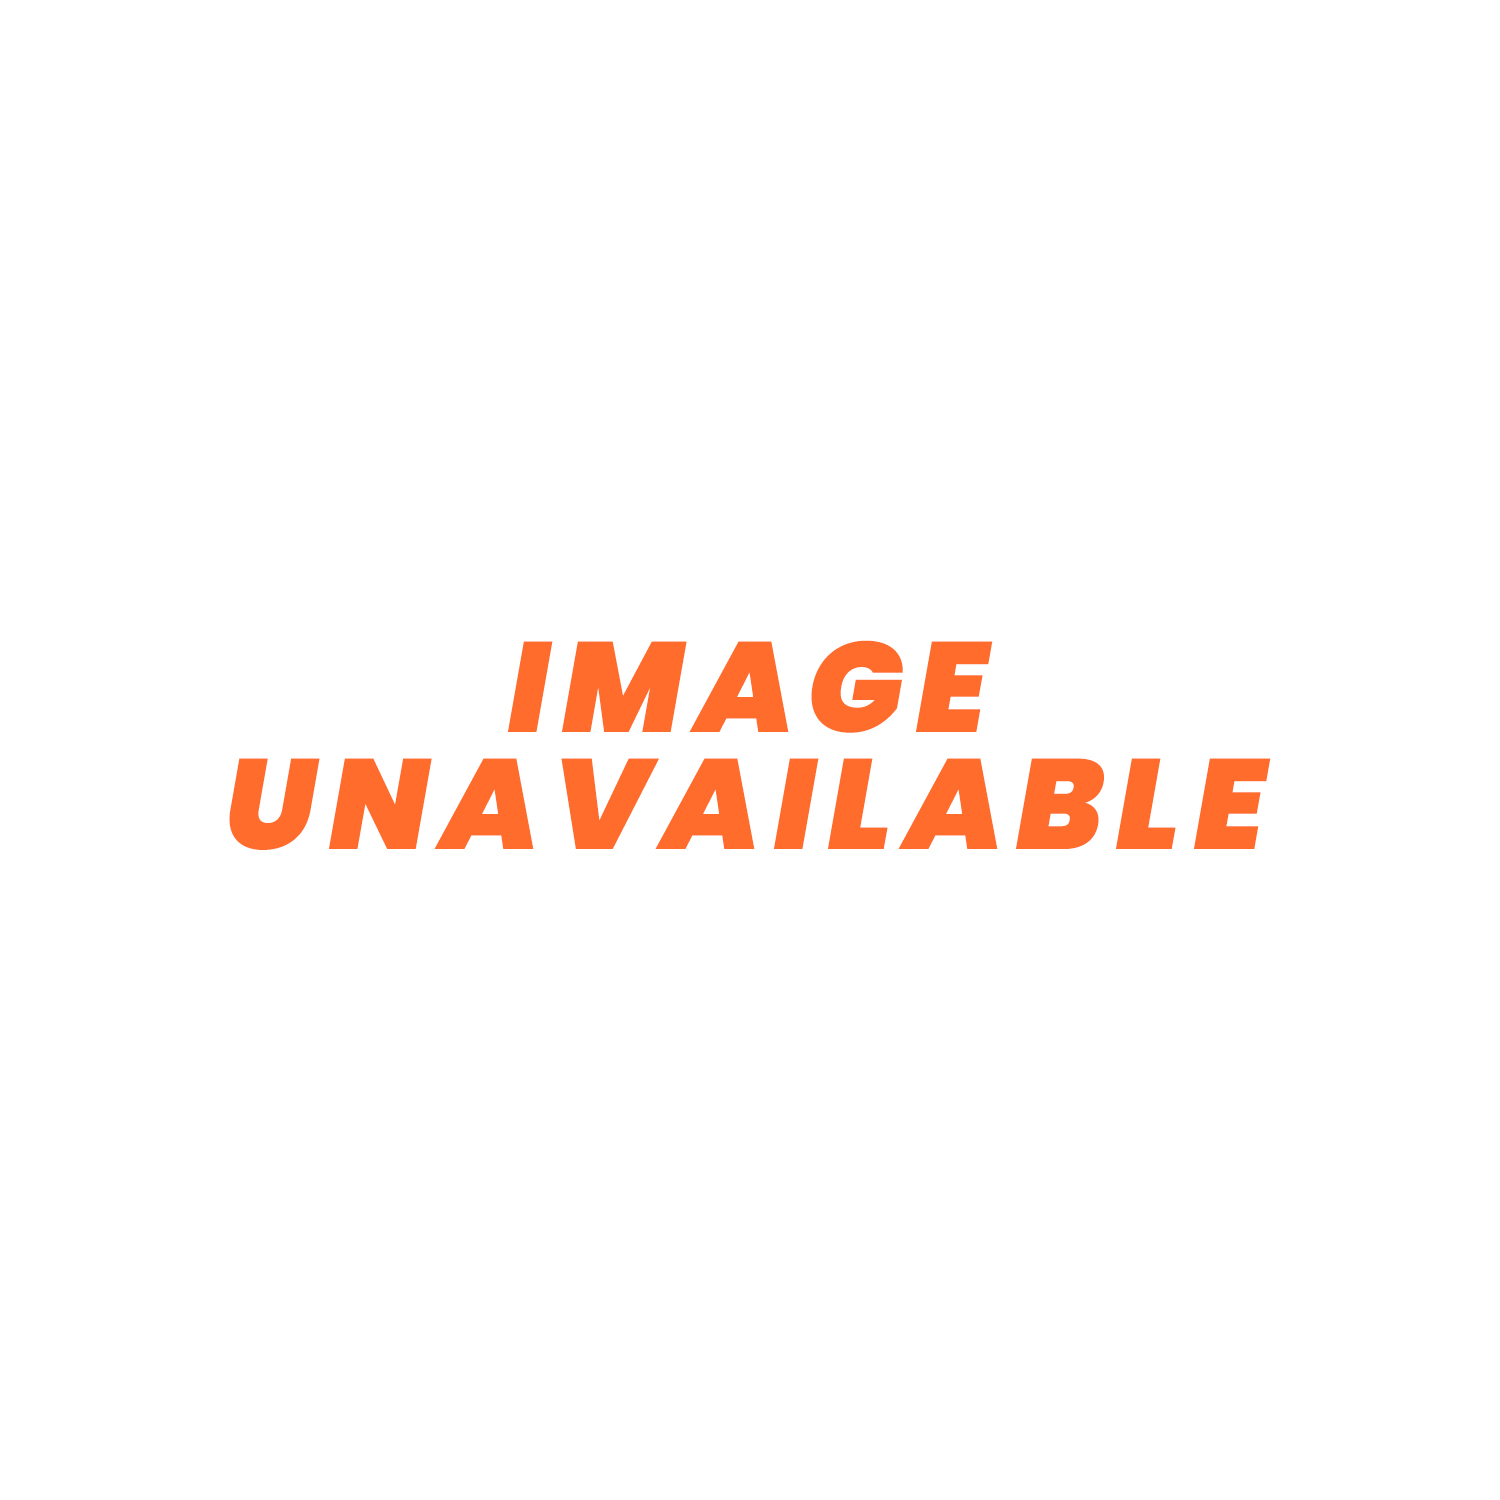 Sanden SD5H09 5077 82cc Compressor 2G 'A' Horizontal 125mm 12v